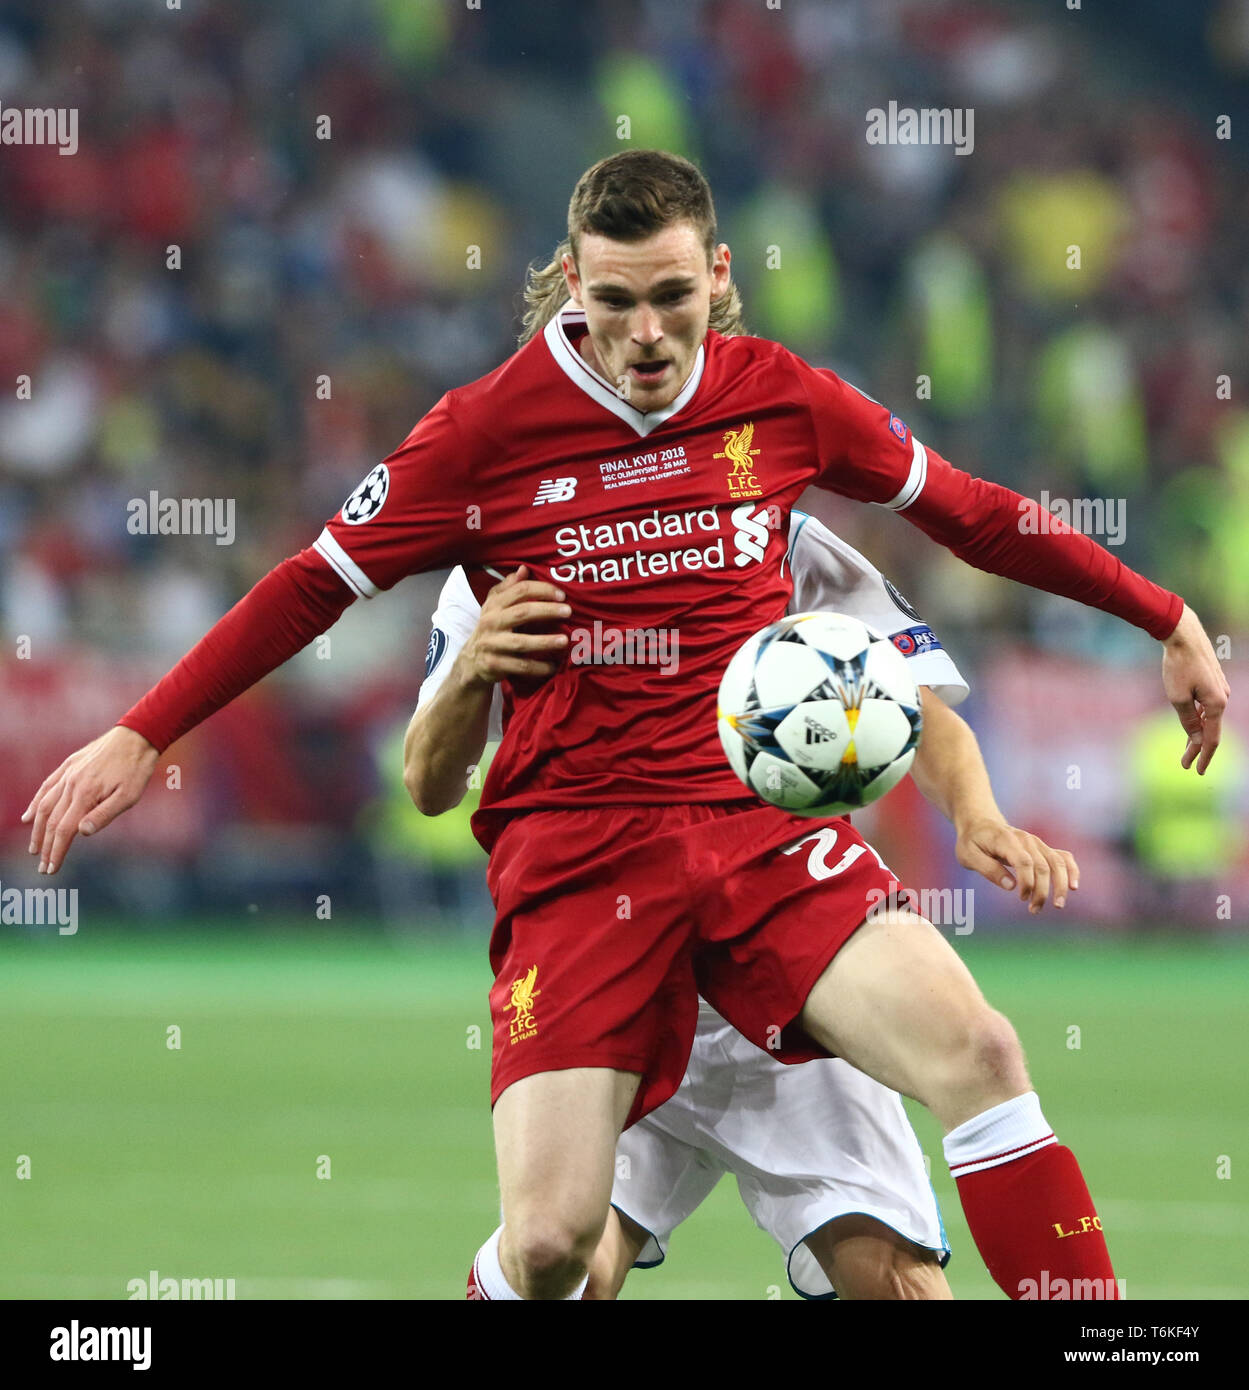 Andy Robertson of Liverpool fights for a ball with Luka Modric of Real Madrid during their UEFA Champions League Final 2018 - Stock Image